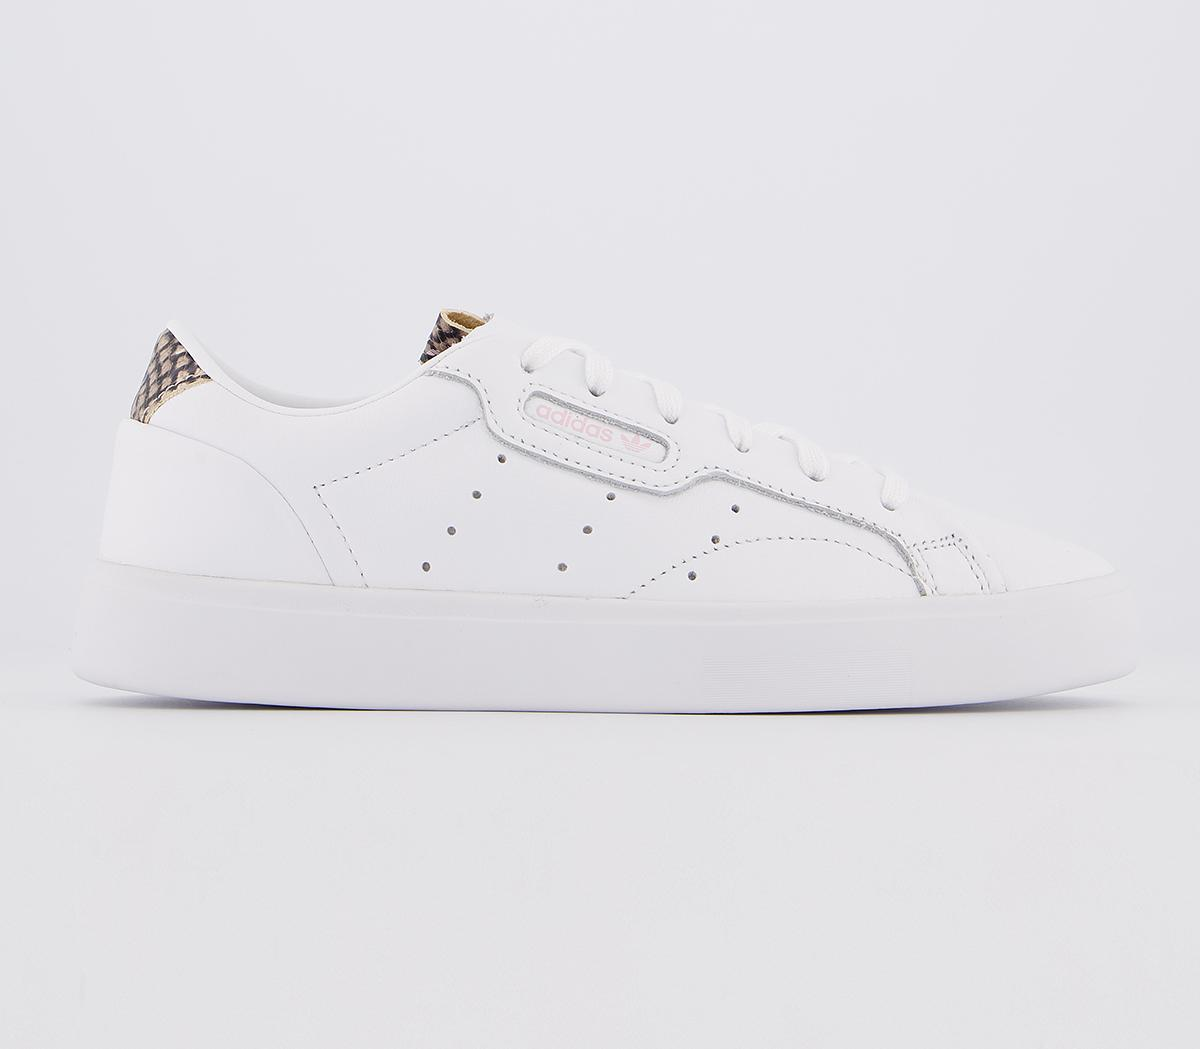 acceso tema templo  adidas Sleek Trainers White Clear Pink Snake Print Exclusive - Hers trainers